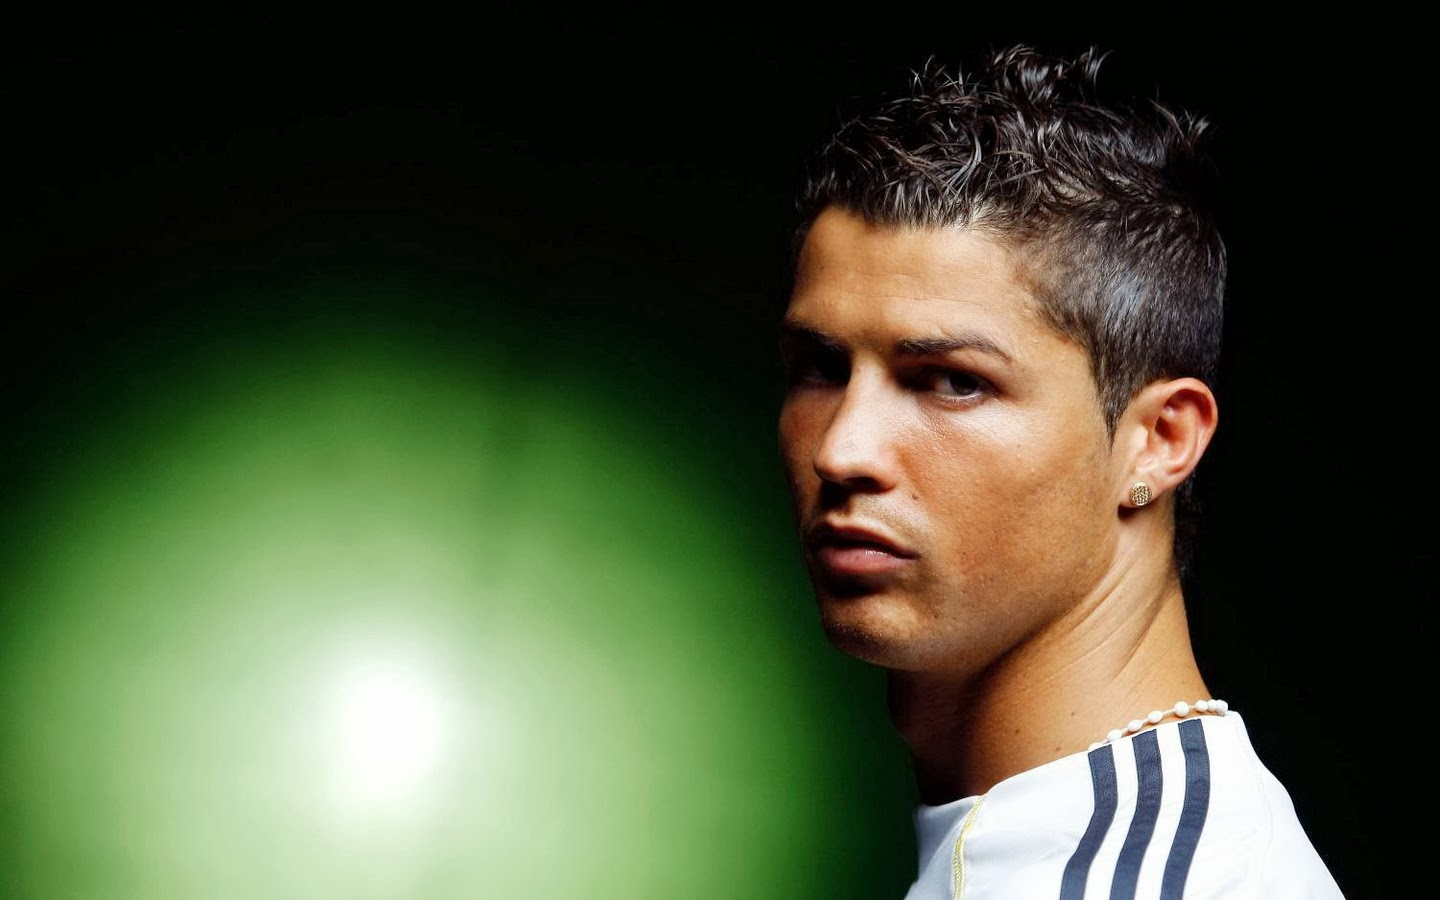 Football players ronaldo hd